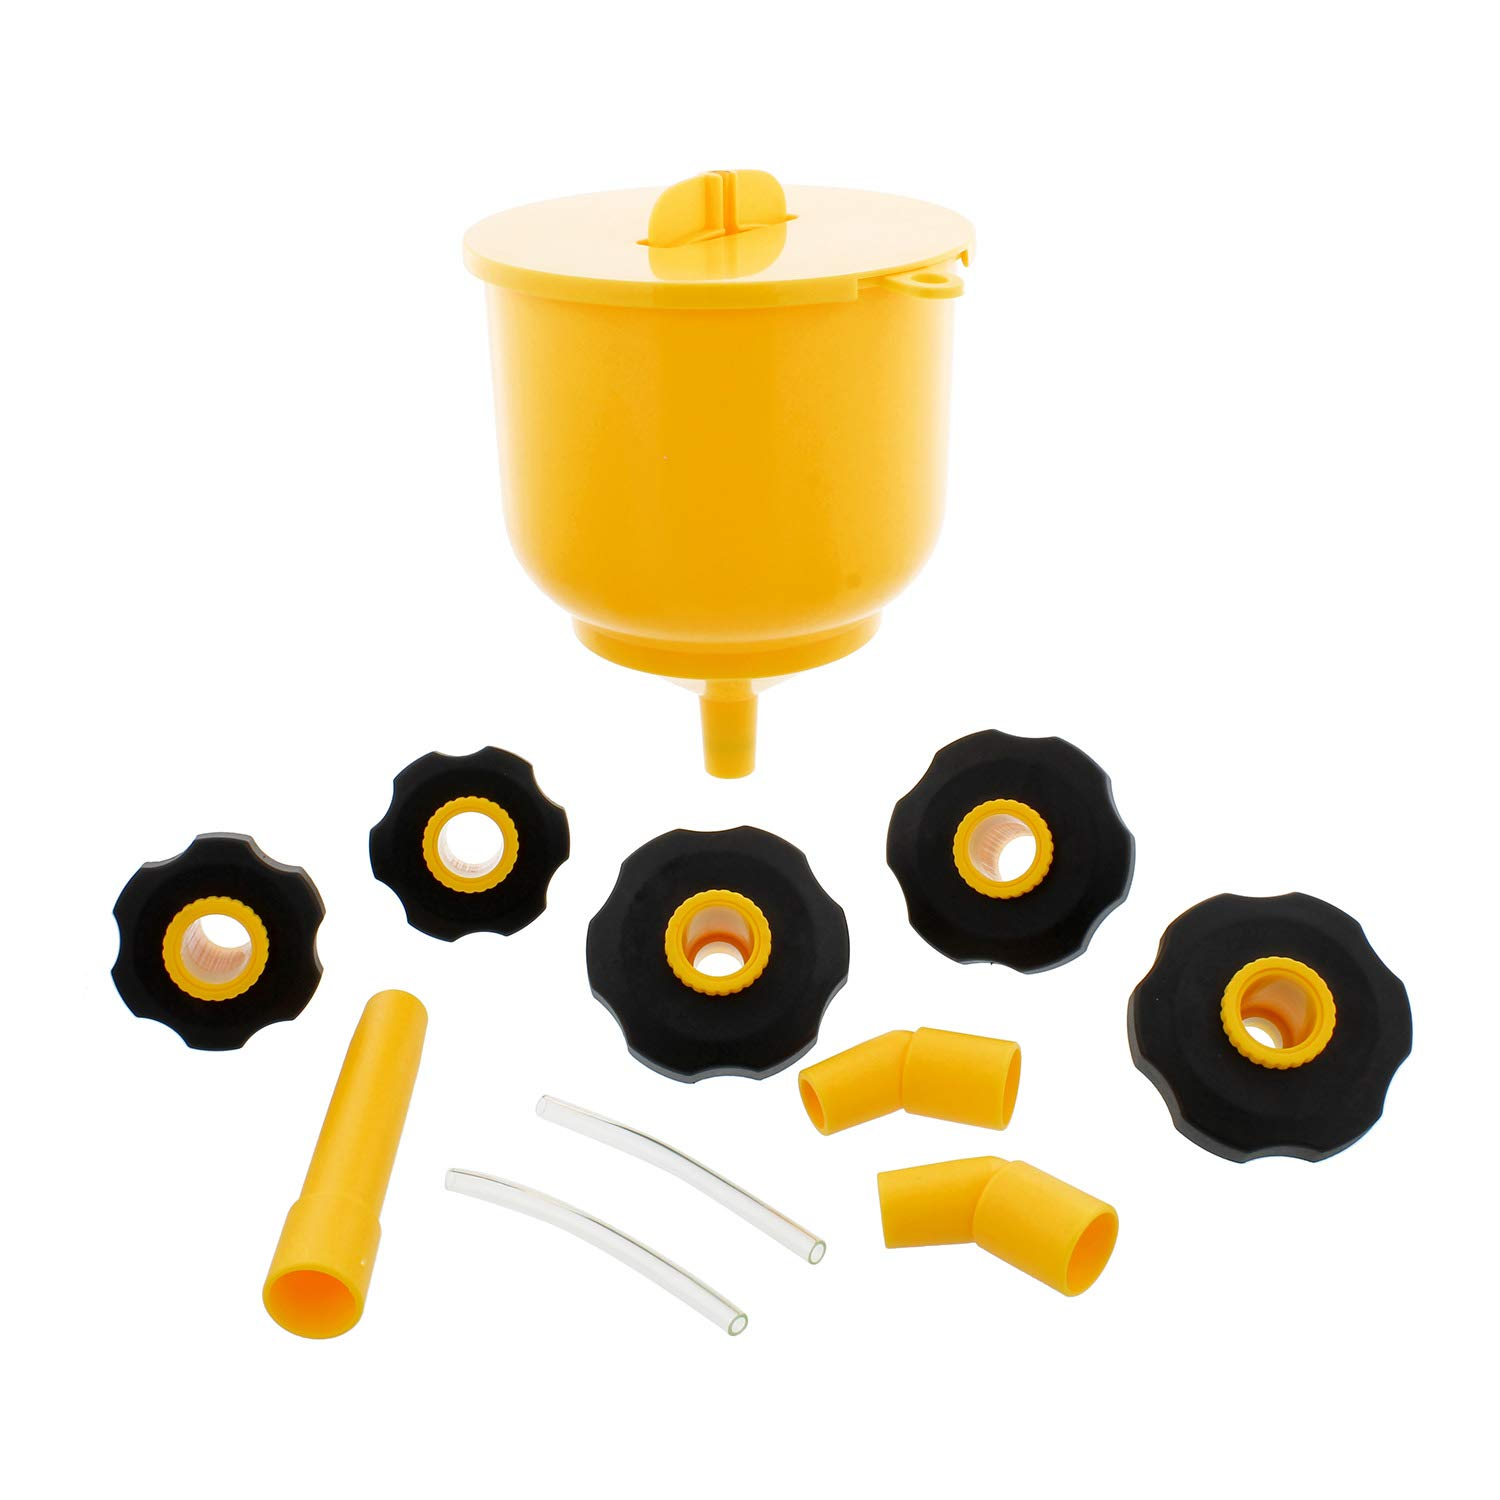 Coolant Funnel Kit Radiator Spill Free Funnel Auto Coolant Flush Kit No Spill Funnel Radiator Funnel Fill Kit ABN